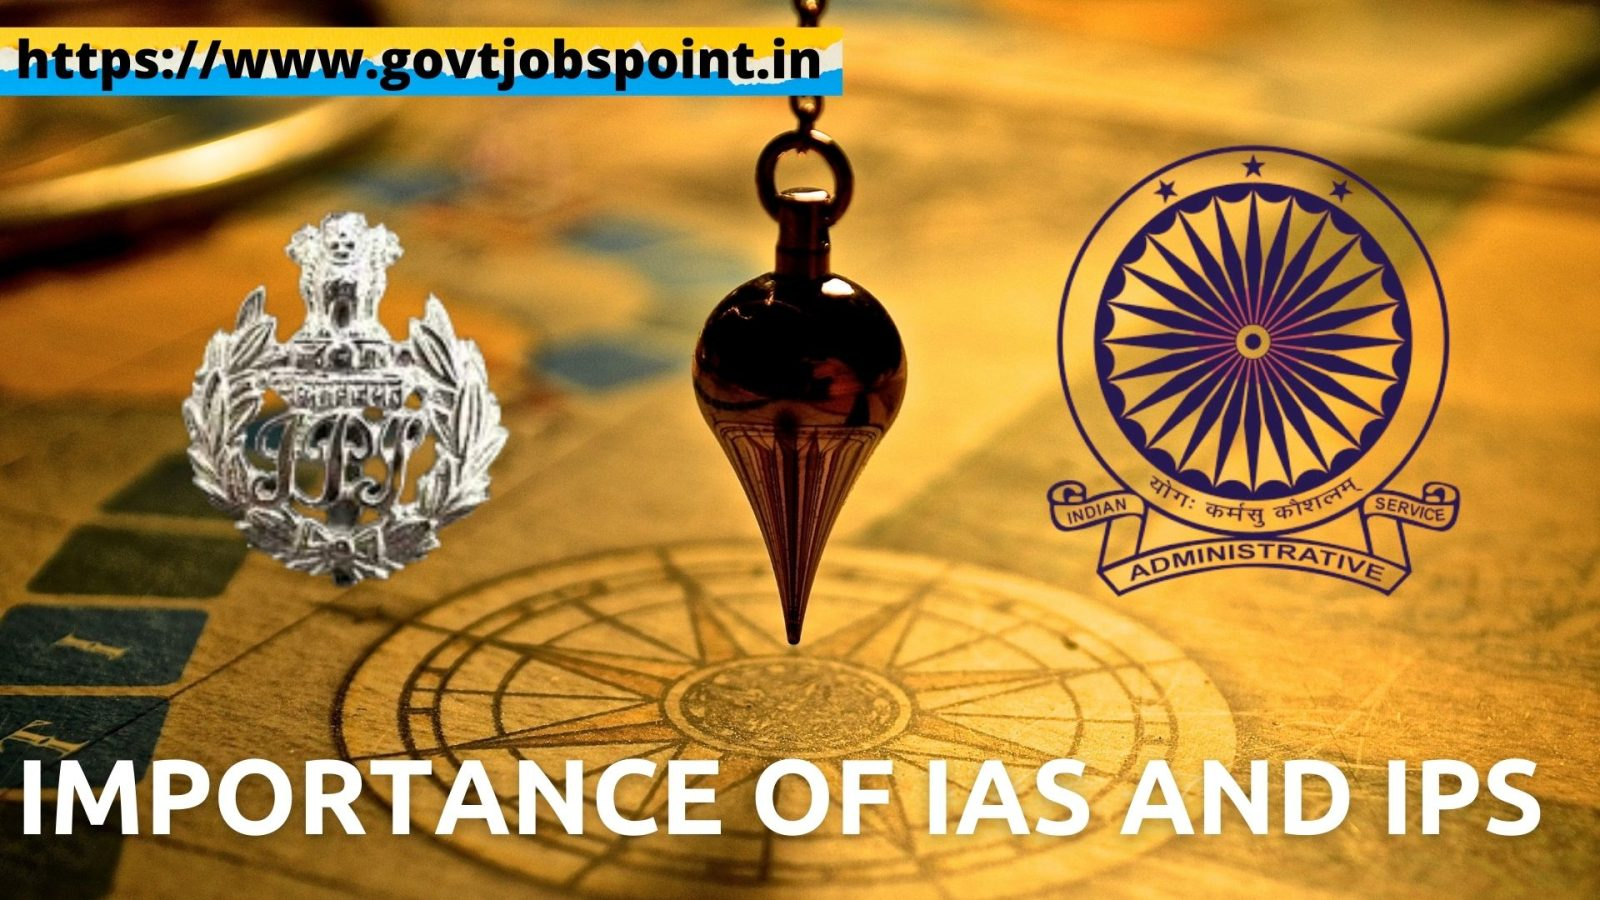 IMPORTANCE OF IAS AND IPS